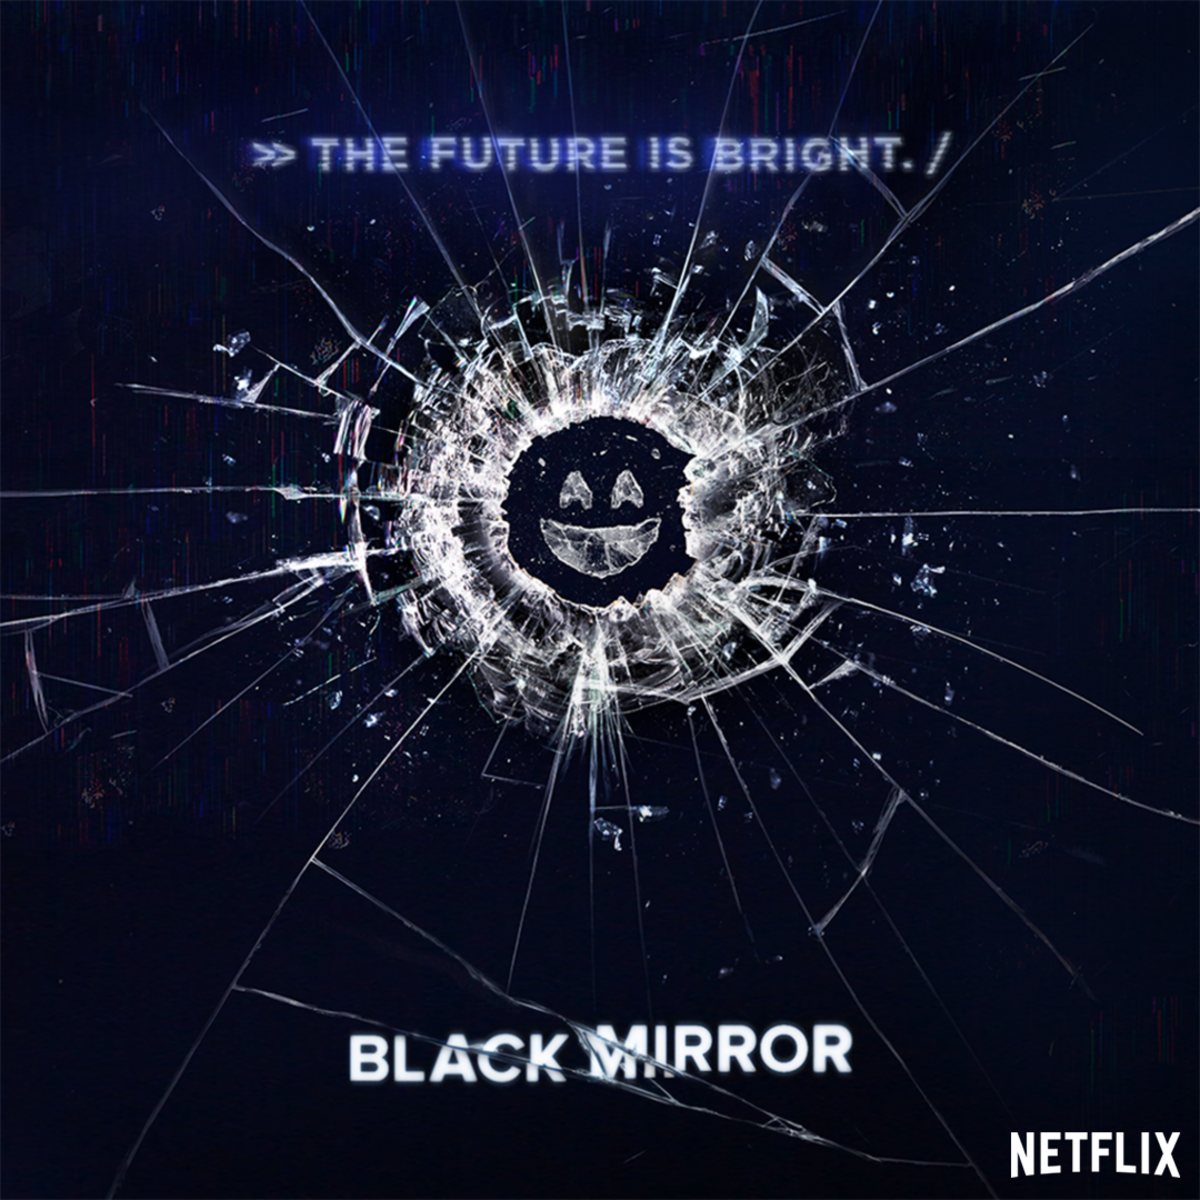 Top 6 Dark and Gritty Shows Like Black Mirror No One Is Watching